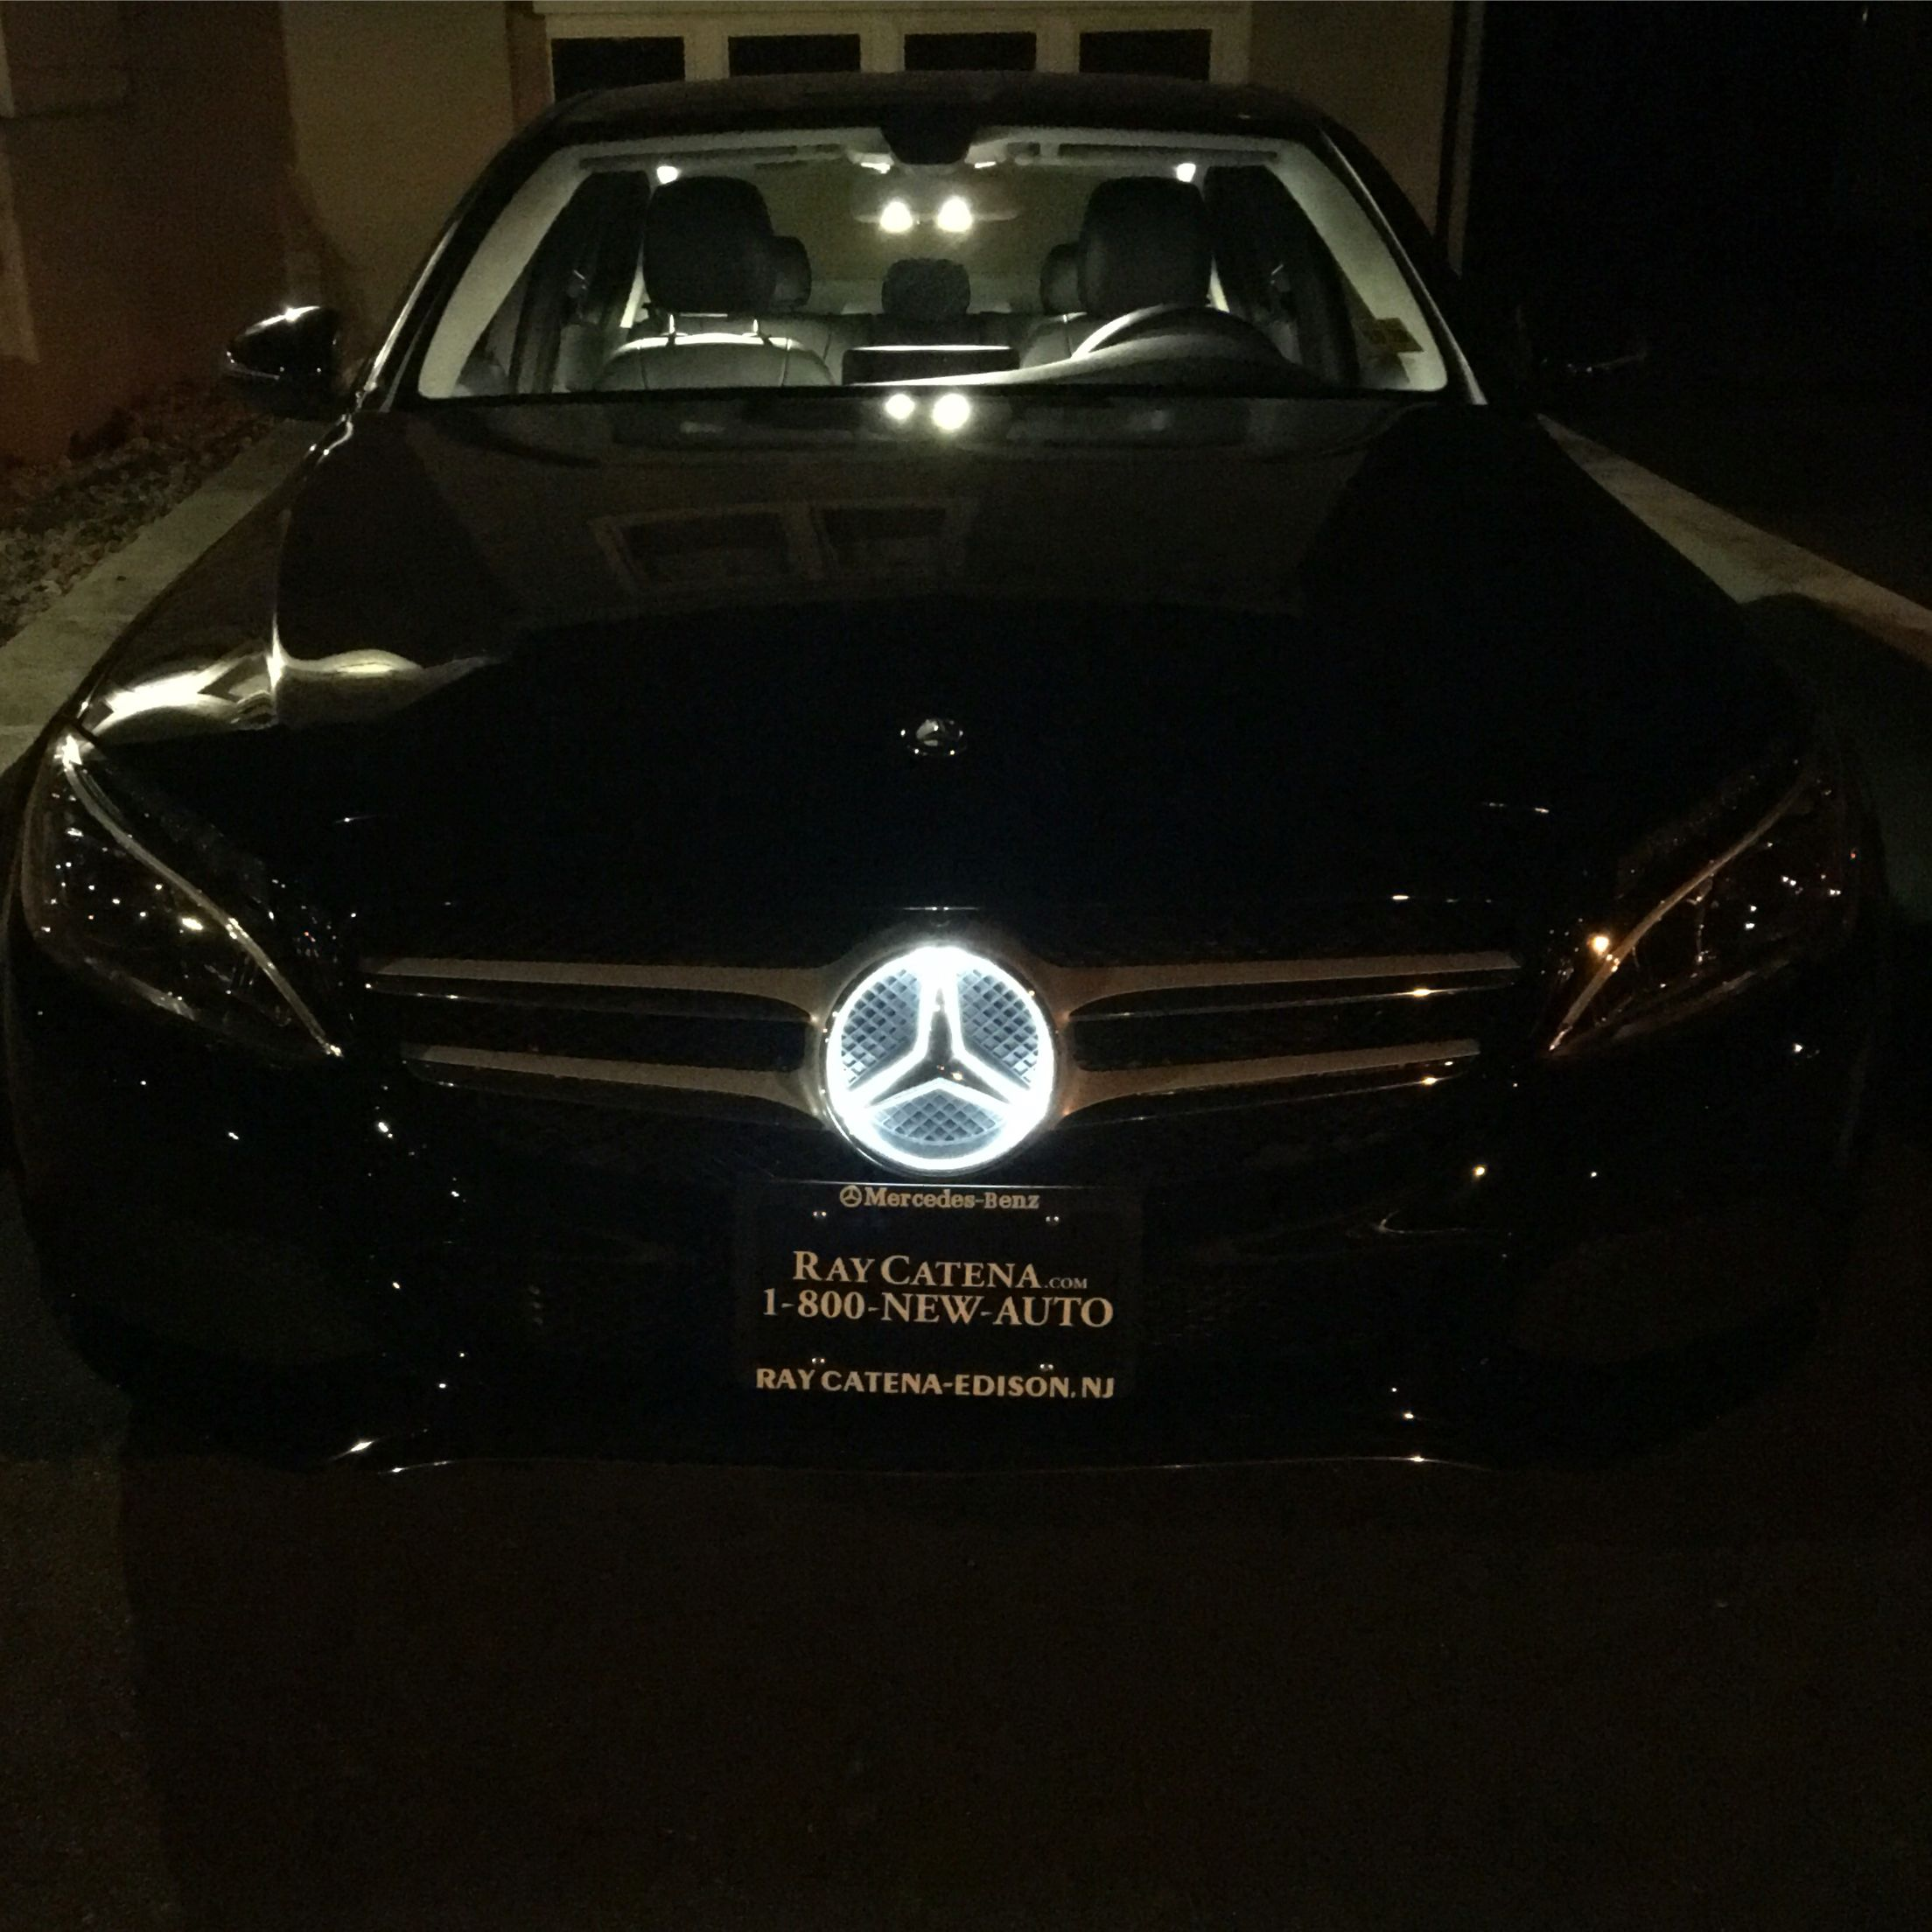 Illuminated Star Option For The New Mercedes Benz Cars C300 4matic